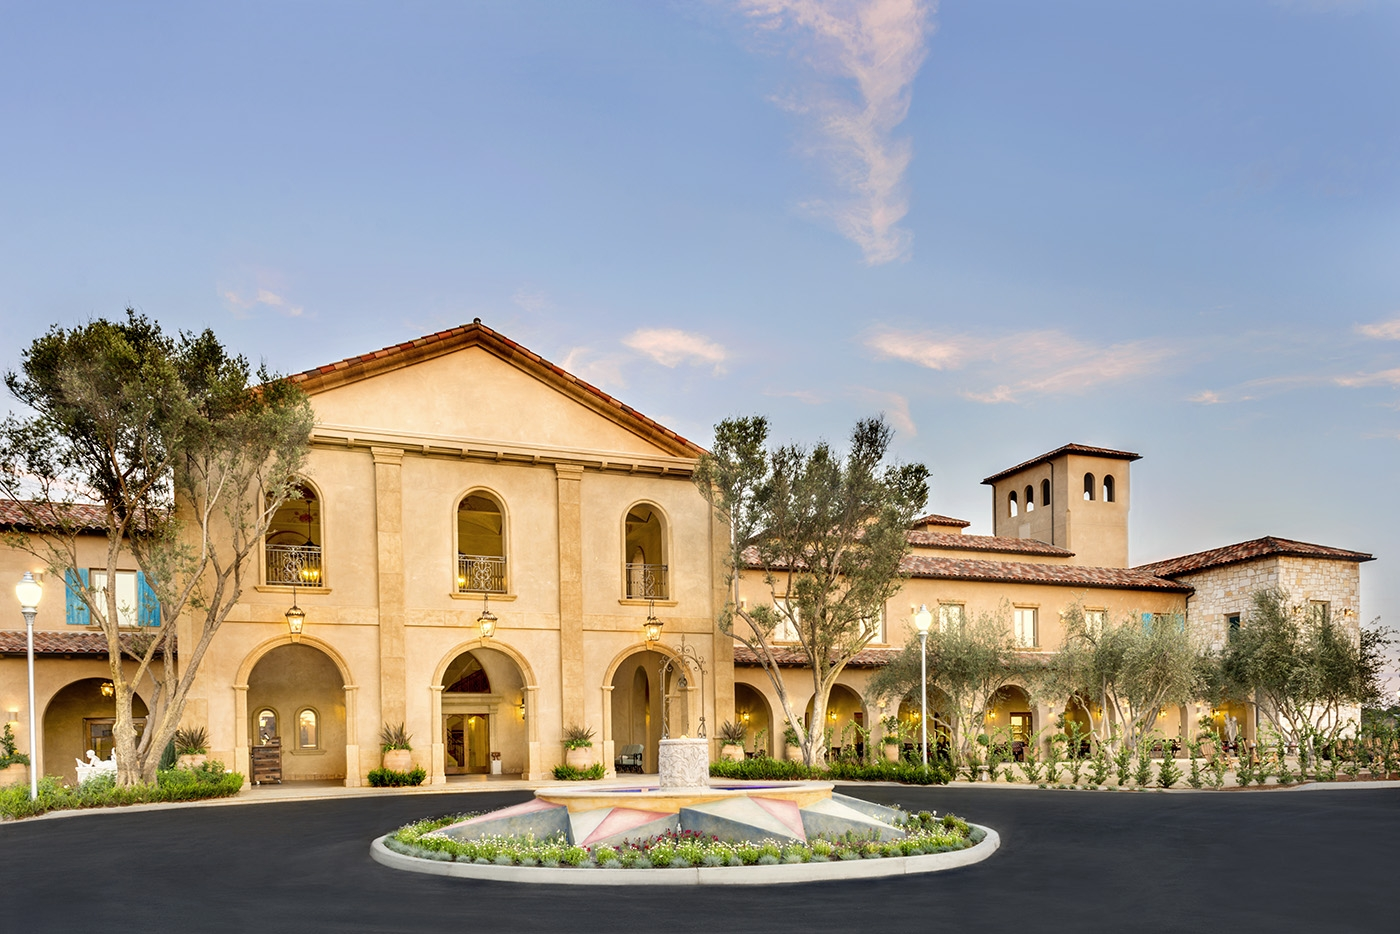 Allegretto Vineyard Resort's Entrance in Paso Robles